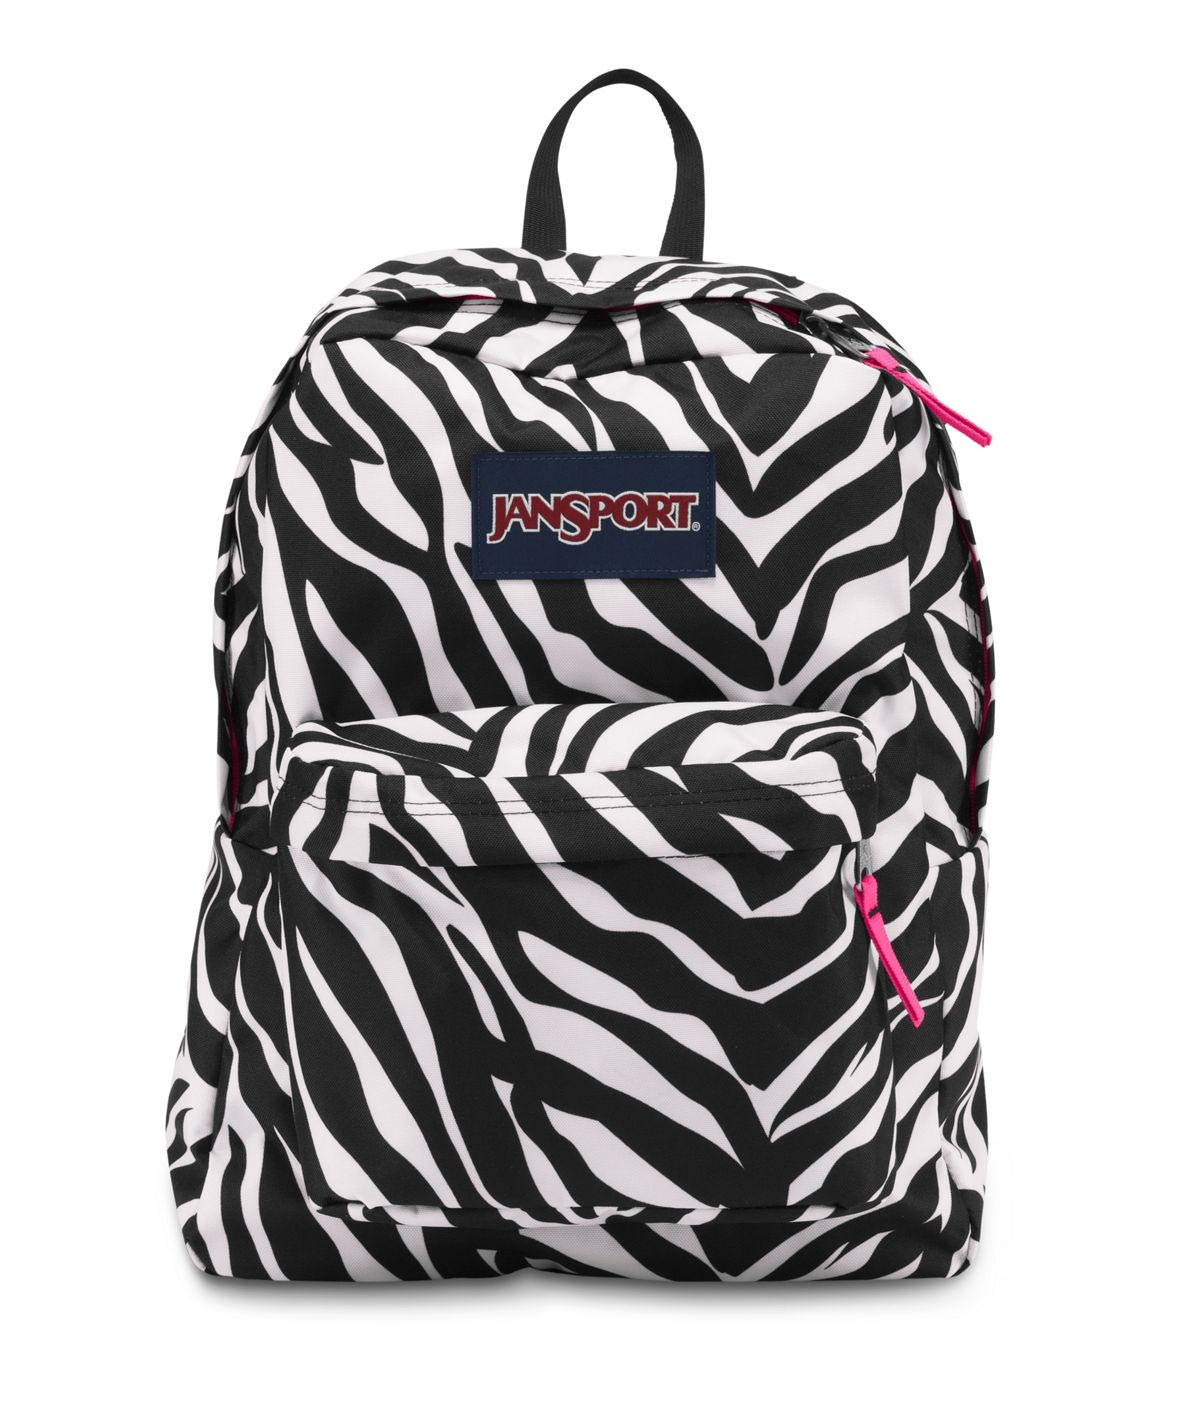 Cheap Backpacks For Girls z2fTY66k